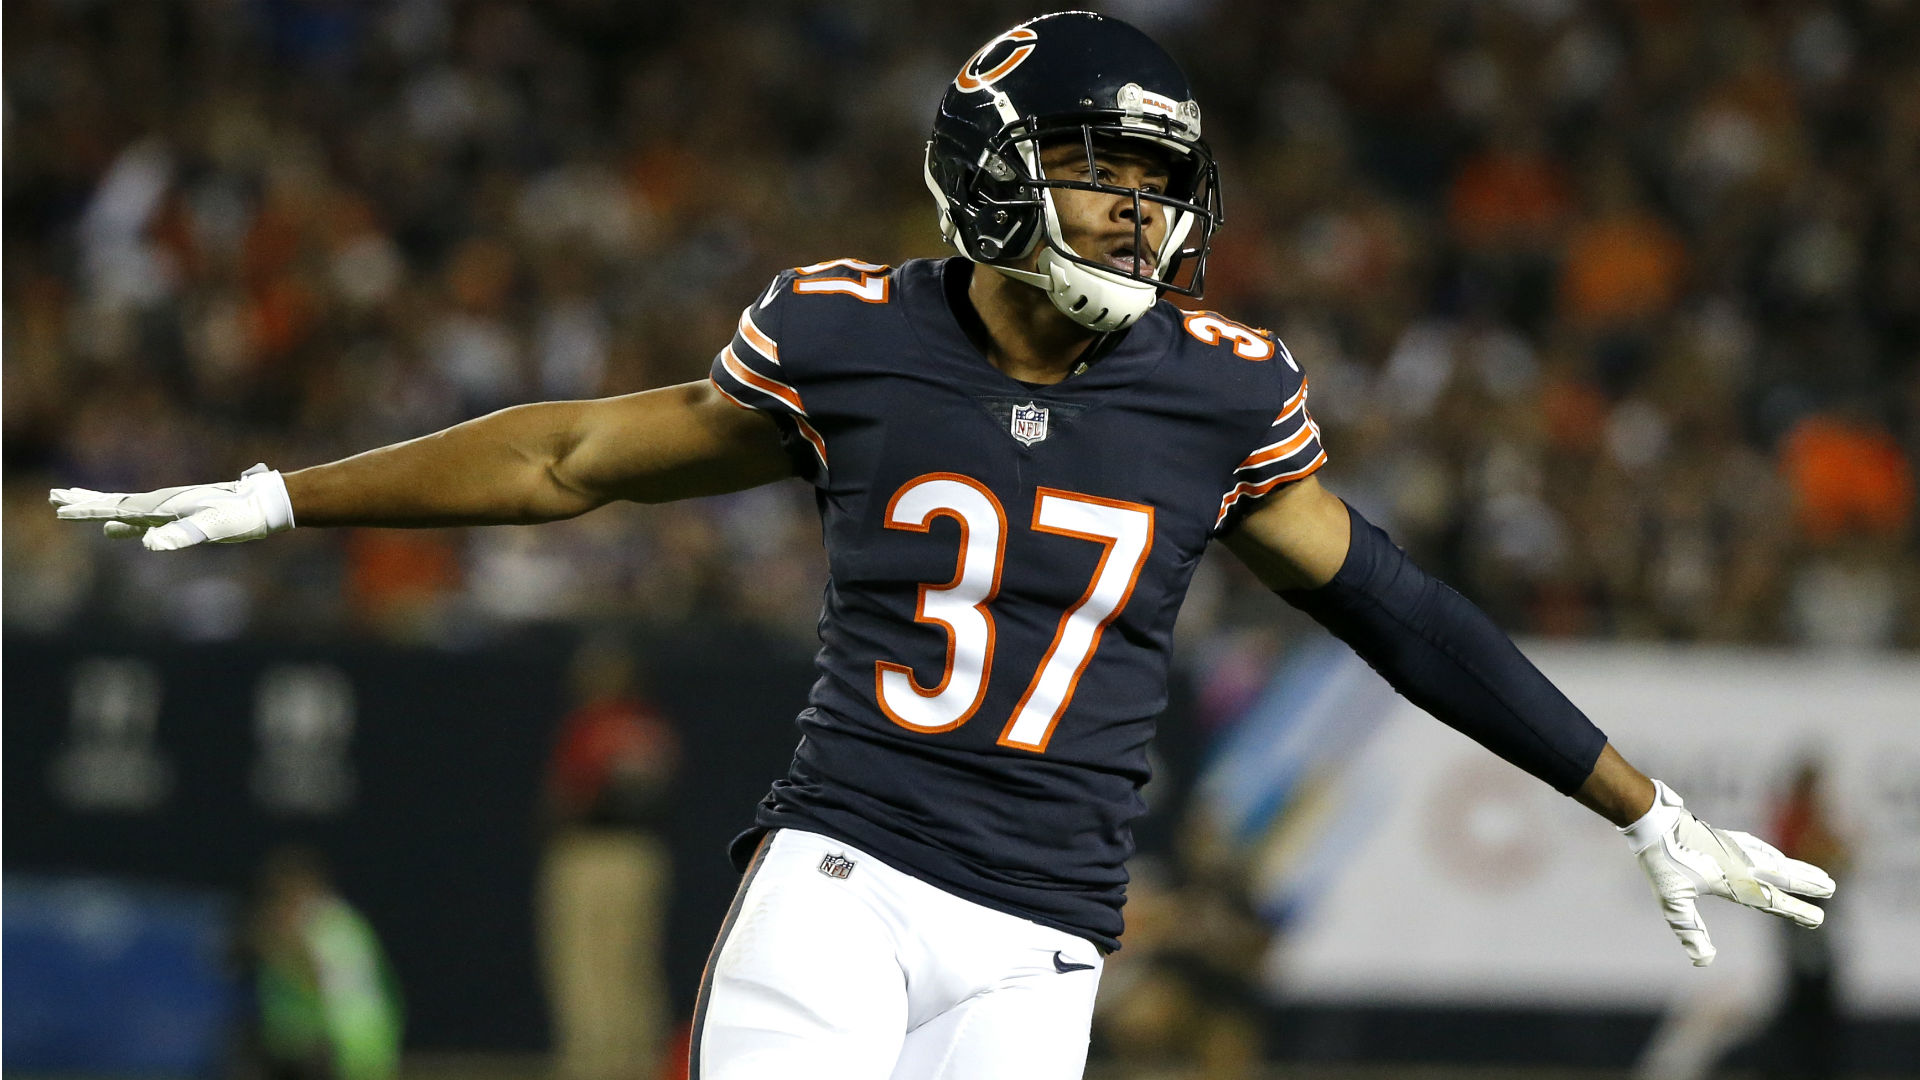 Bryce Callahan injury update: Bears CB (foot) could be done for season, report says